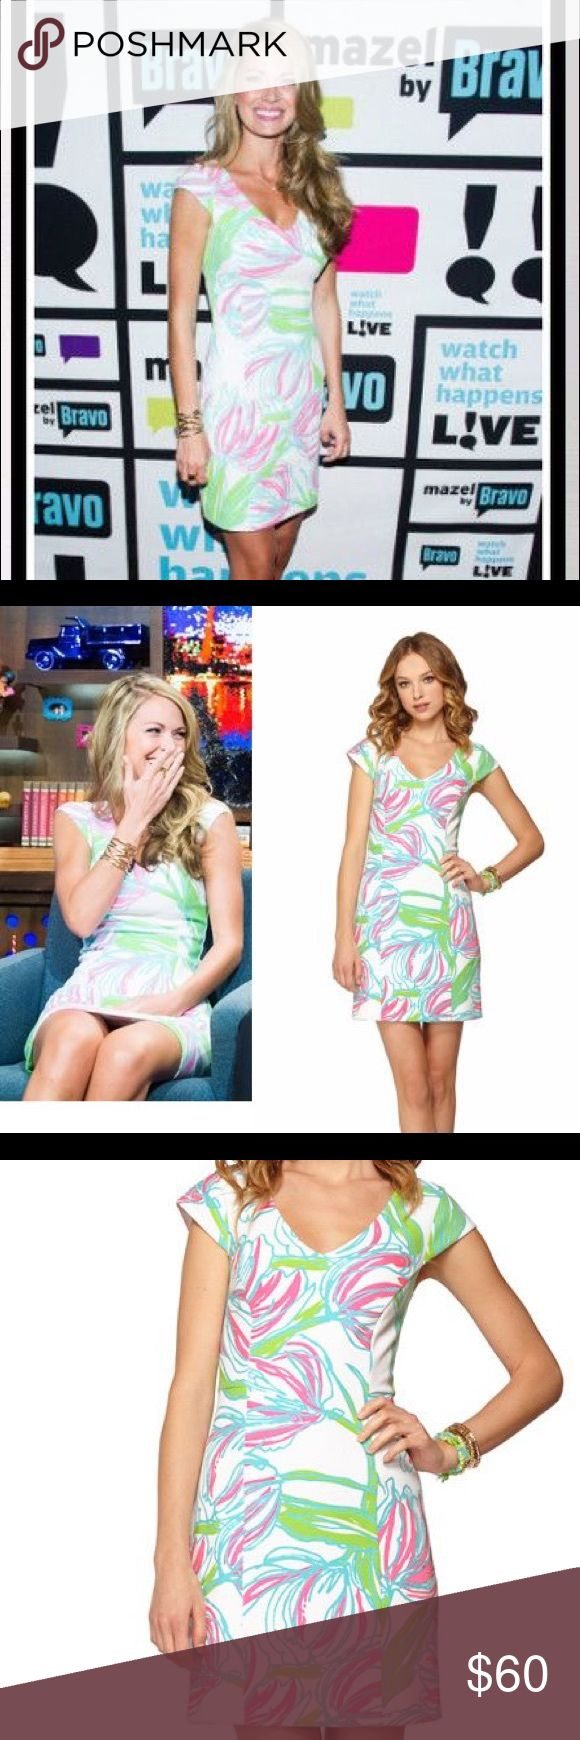 Lily Pulitzer Desiree Cap Sleeve Sheath Dress Lily Pulitzer Desiree Cap Sleeve Sheath Dress in the pattern Ring the bellboy. As seen on Cameron Eubanks Wimberly from Bravo's Southern Charm. Lilly Pulitzer Dresses Midi